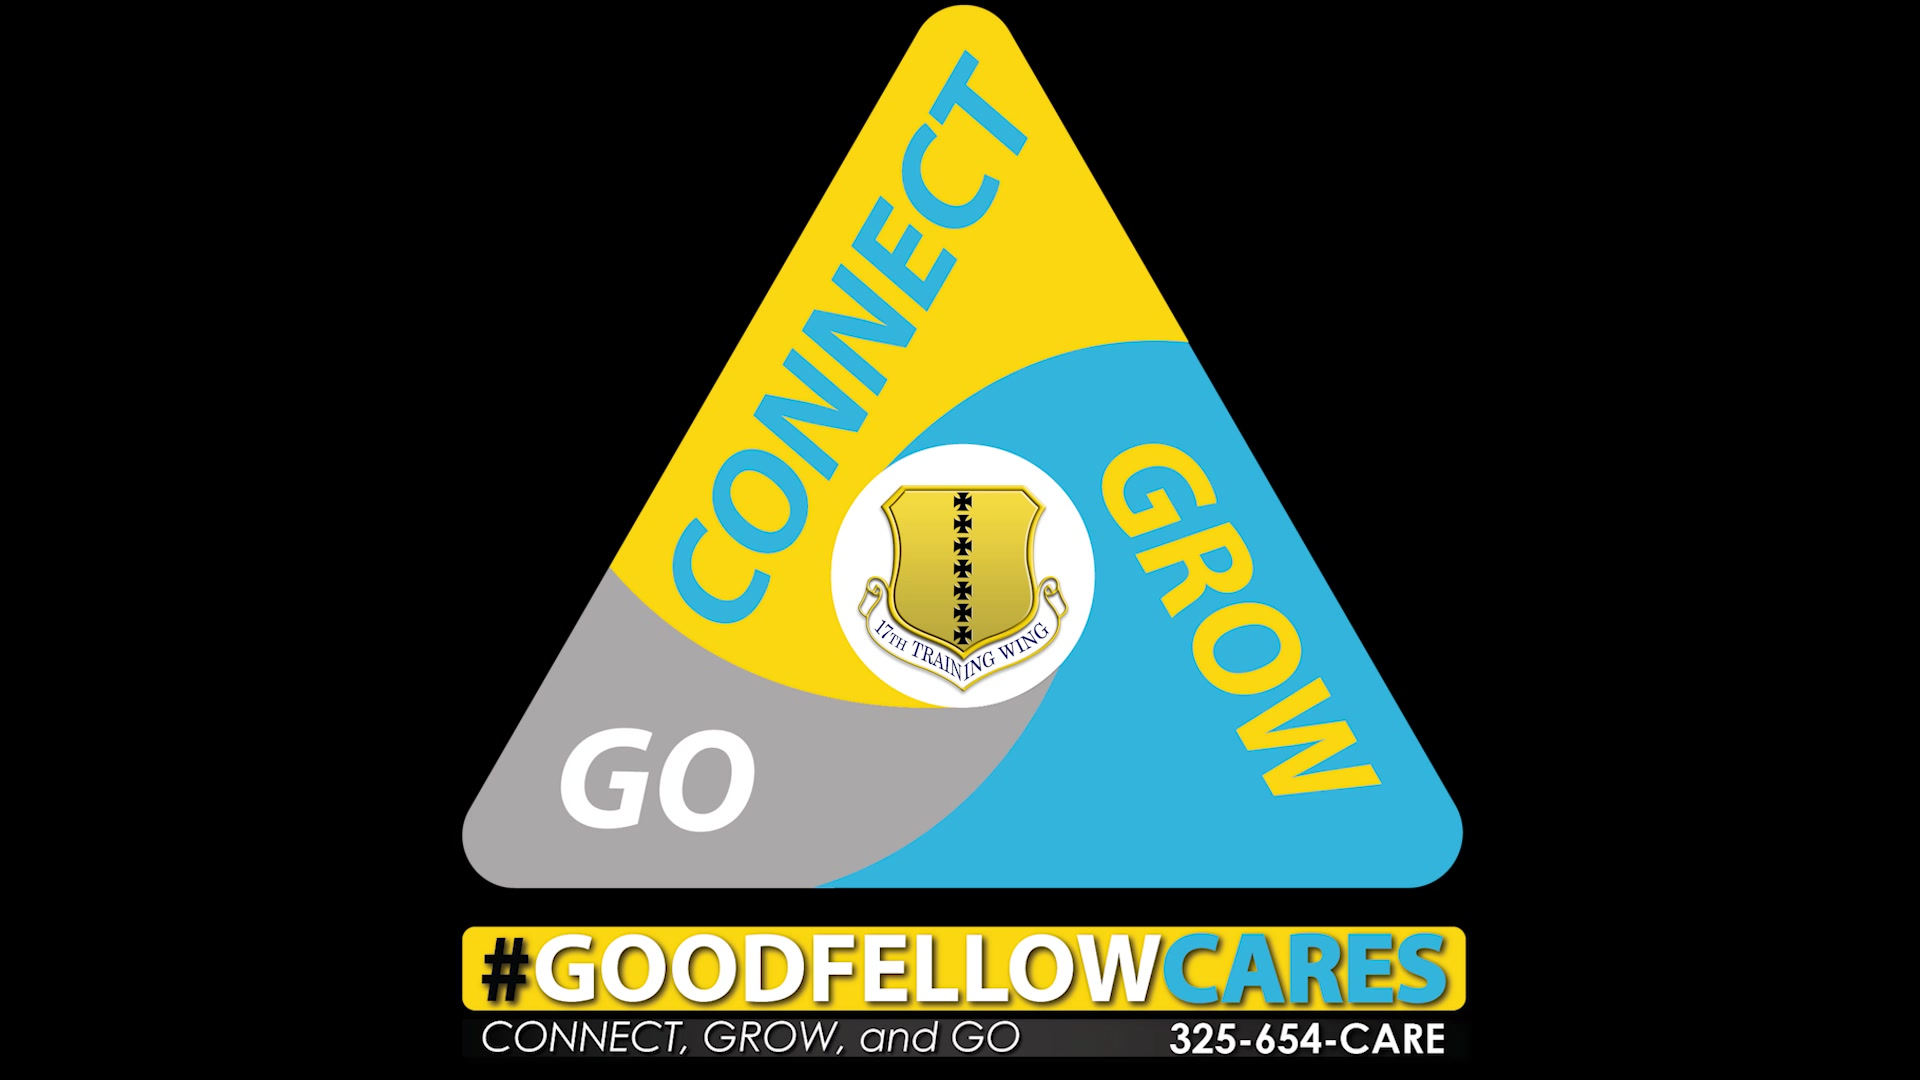 Goodfellow AFB has an abundance of resources for individuals experiencing distress. If you need help, call (325)-654-CARE.